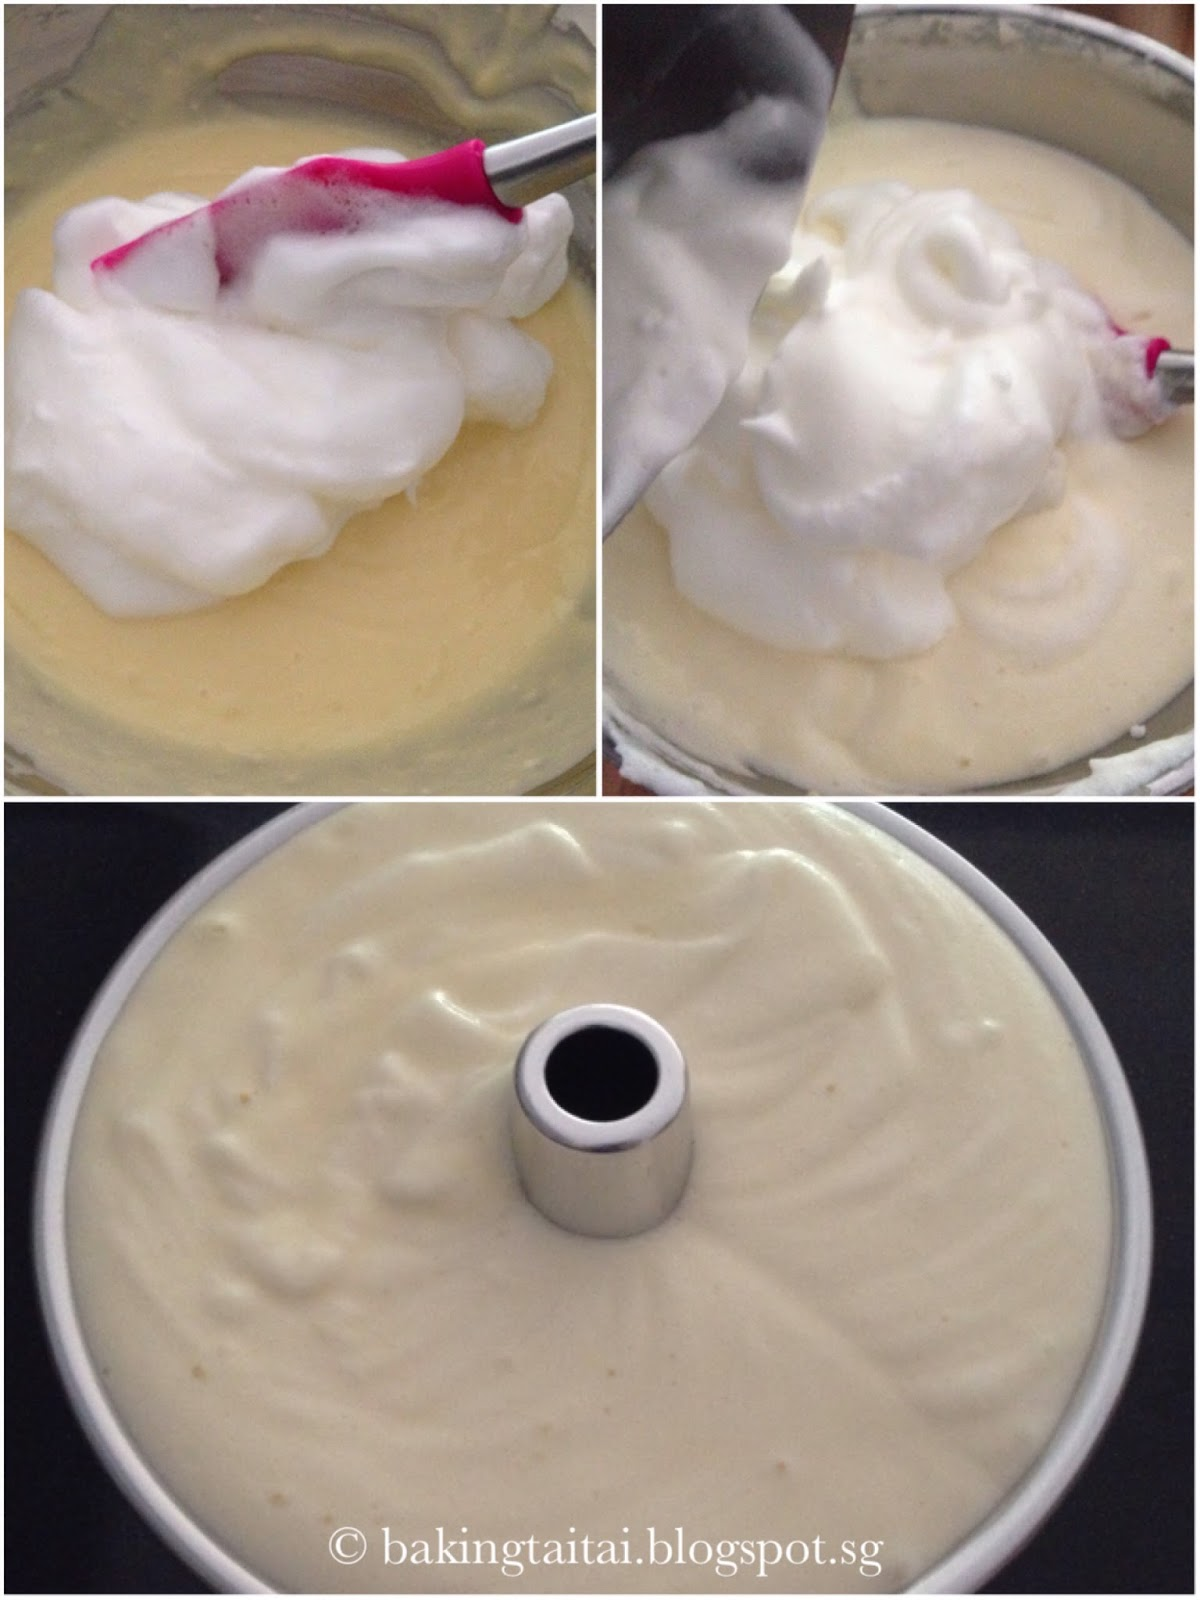 Baking Taitai Japanese Cream Cheese Chiffon Cake Premium Blueberry 20cm 7 Bake In A Pre Heated Oven At 170 Degree Celcius Top Bottom Heat For 50 Minutes Surface Need Not Baked Till Brown Just Insert Skewer Centre And